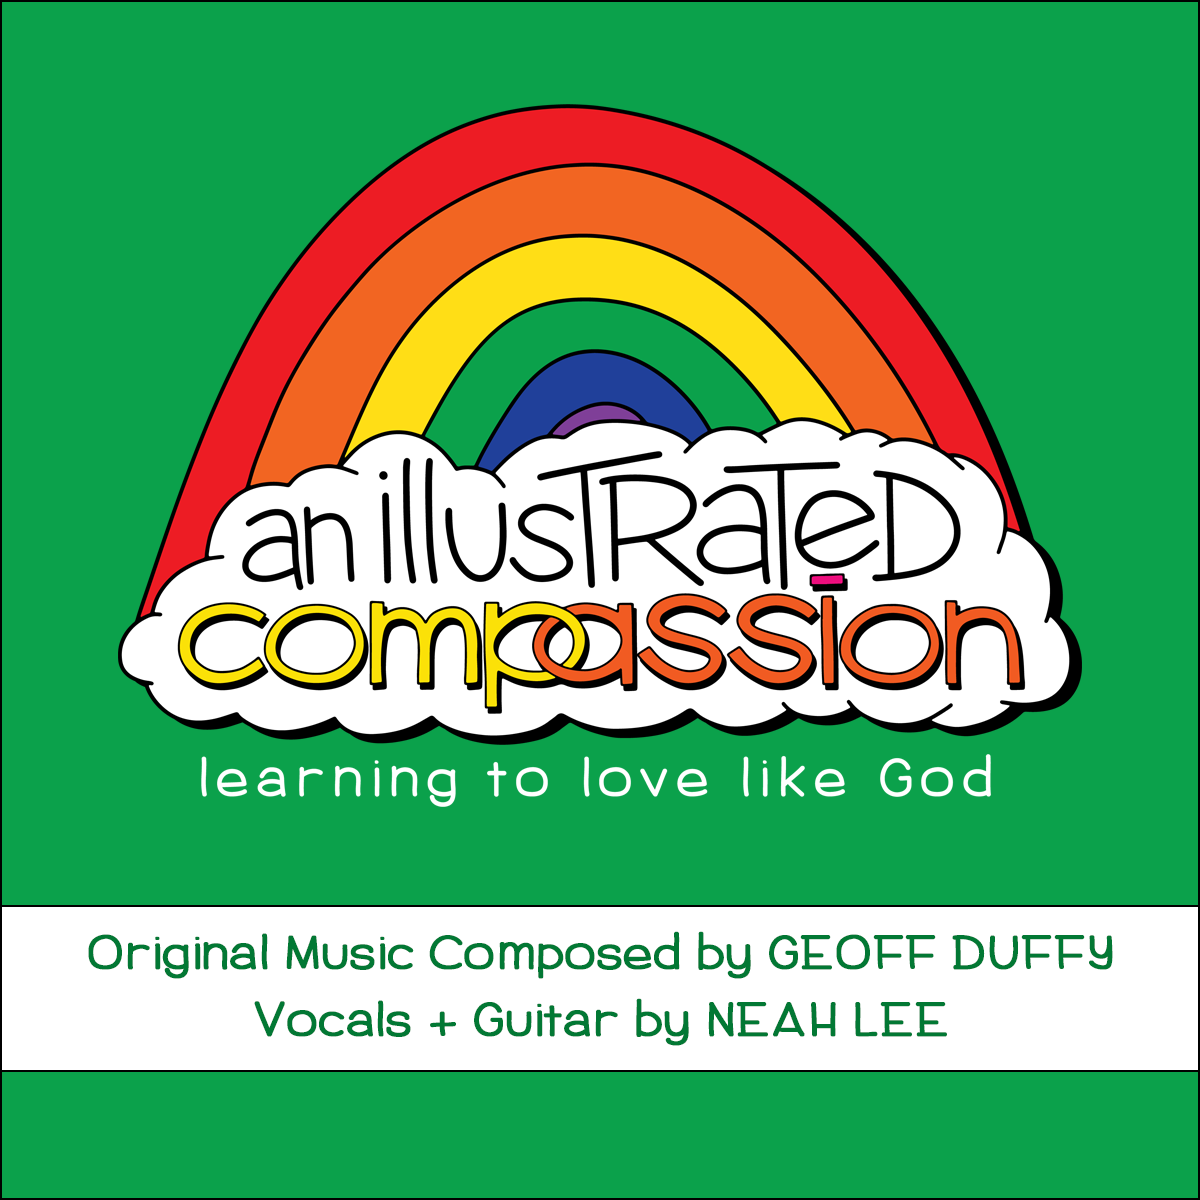 An Illustrated Compassion Curriculum Music